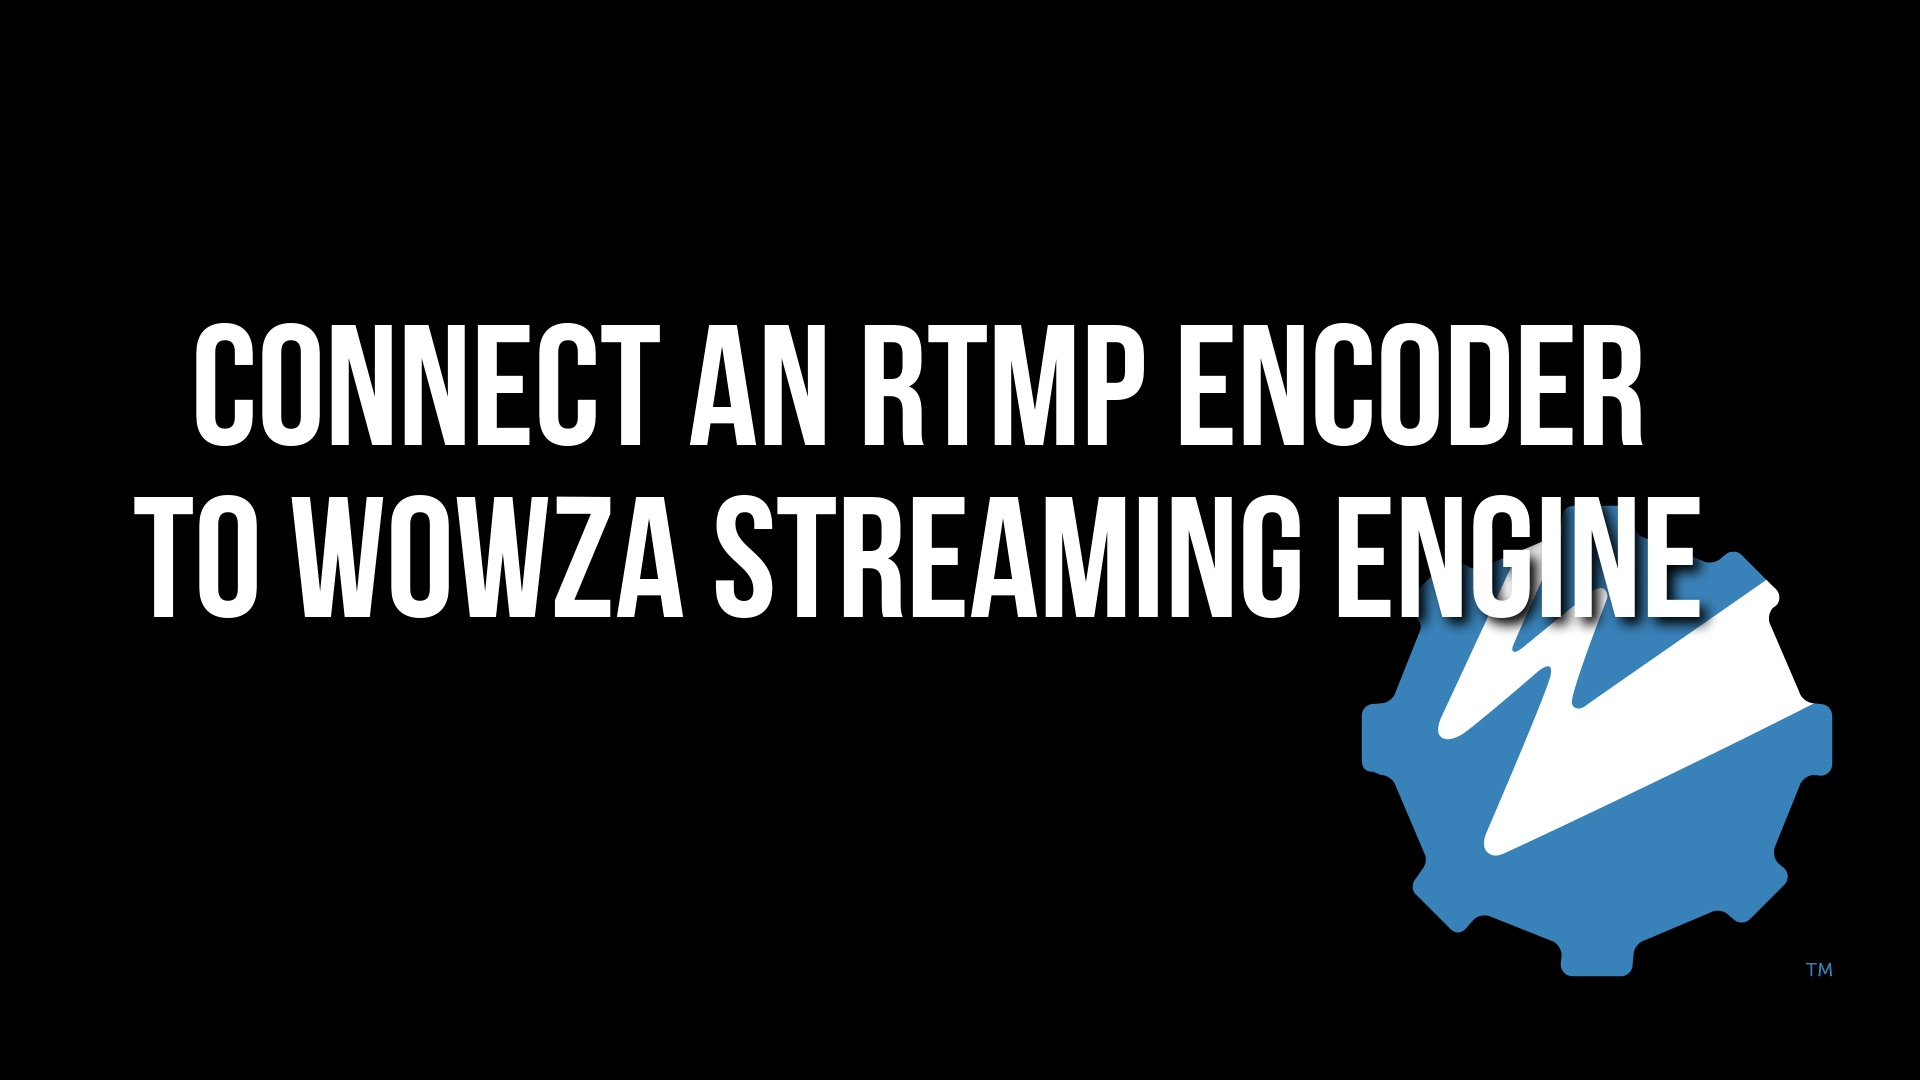 Set up an RTMP encoder for live streaming